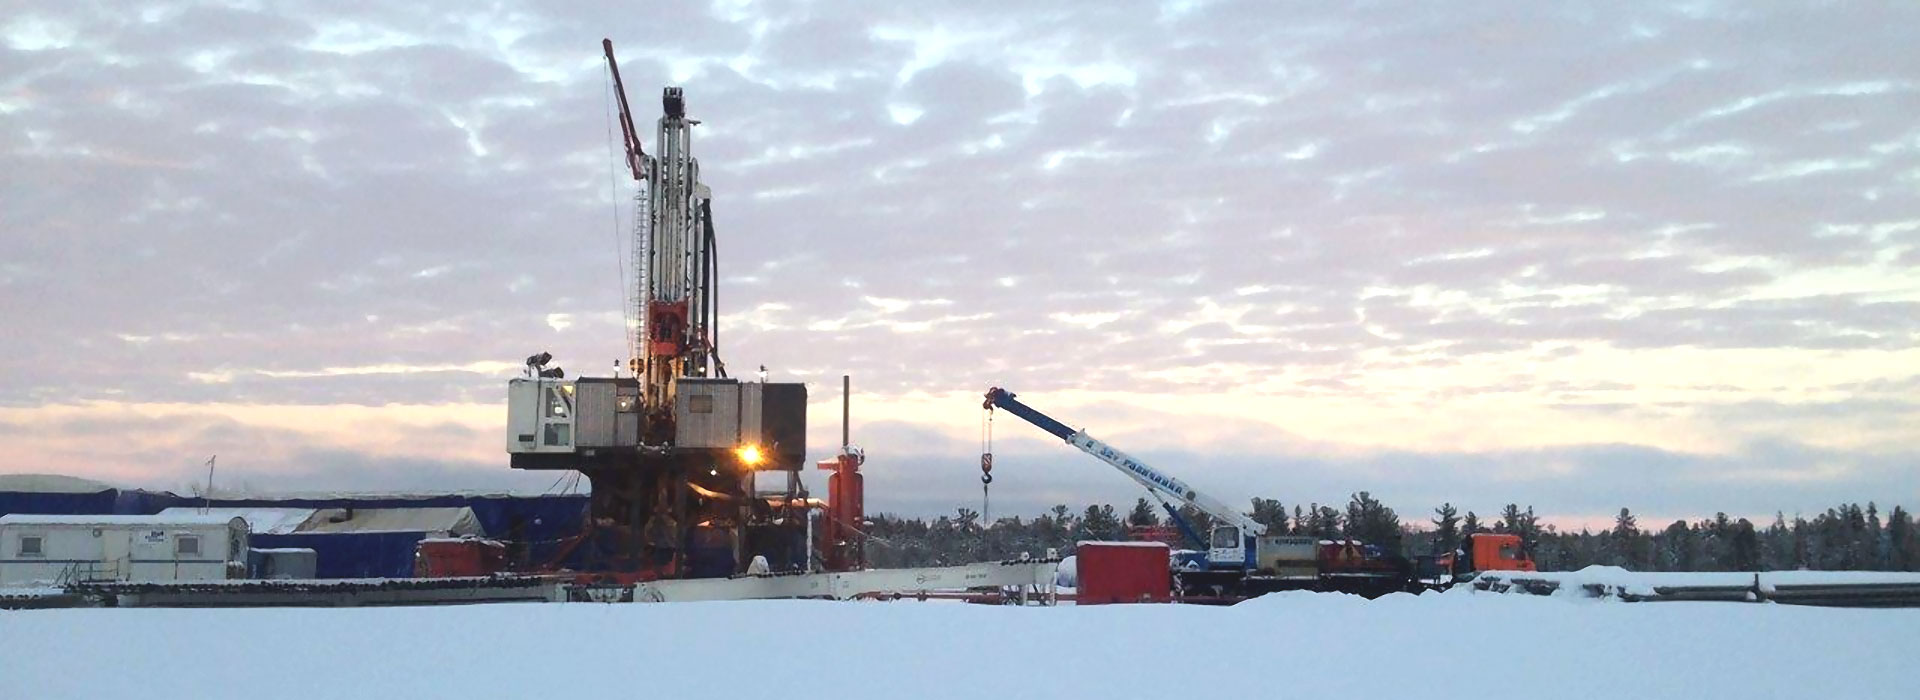 A growing production base benefiting from horizontal drilling and waterflood